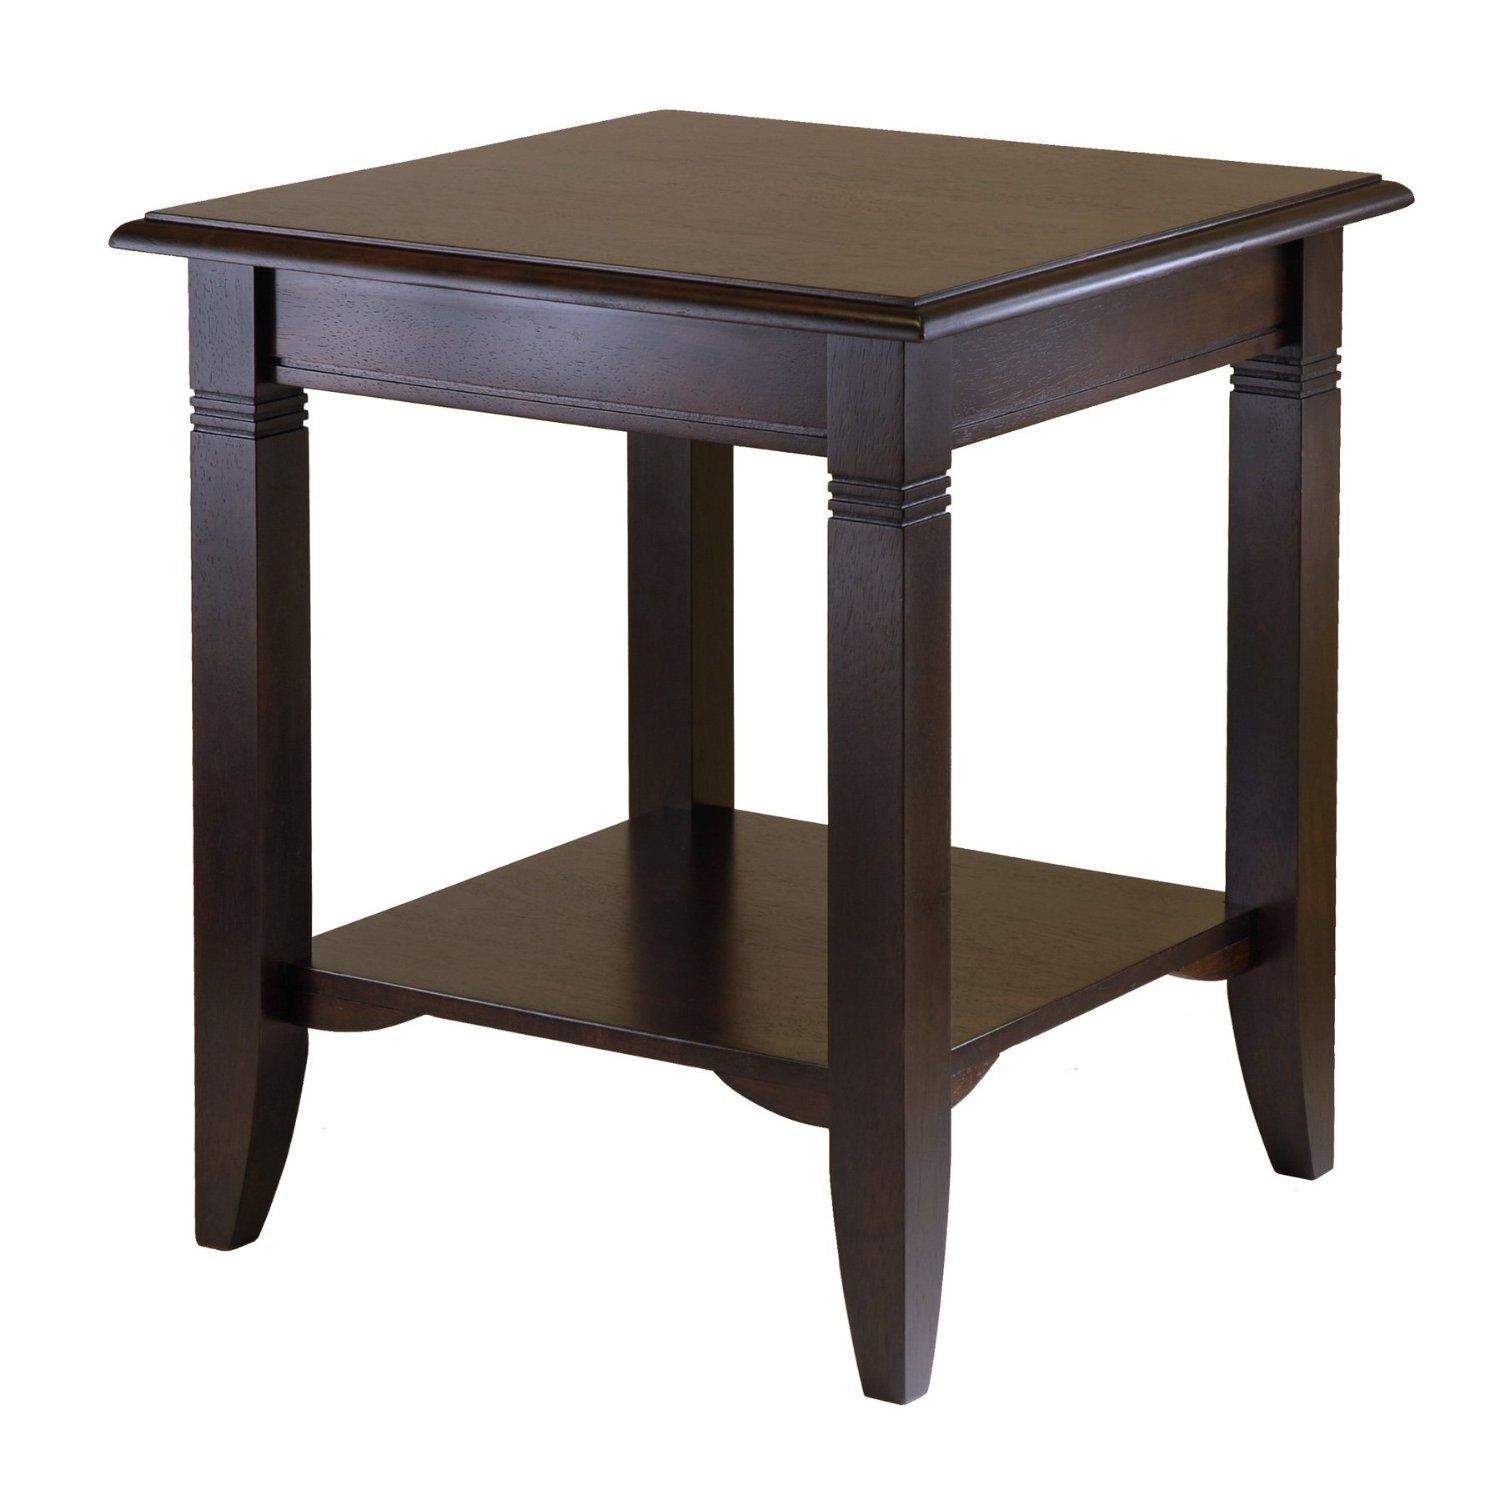 $69. Amazon.com: Winsome Wood Nolan End Table: Kitchen & Dining ...